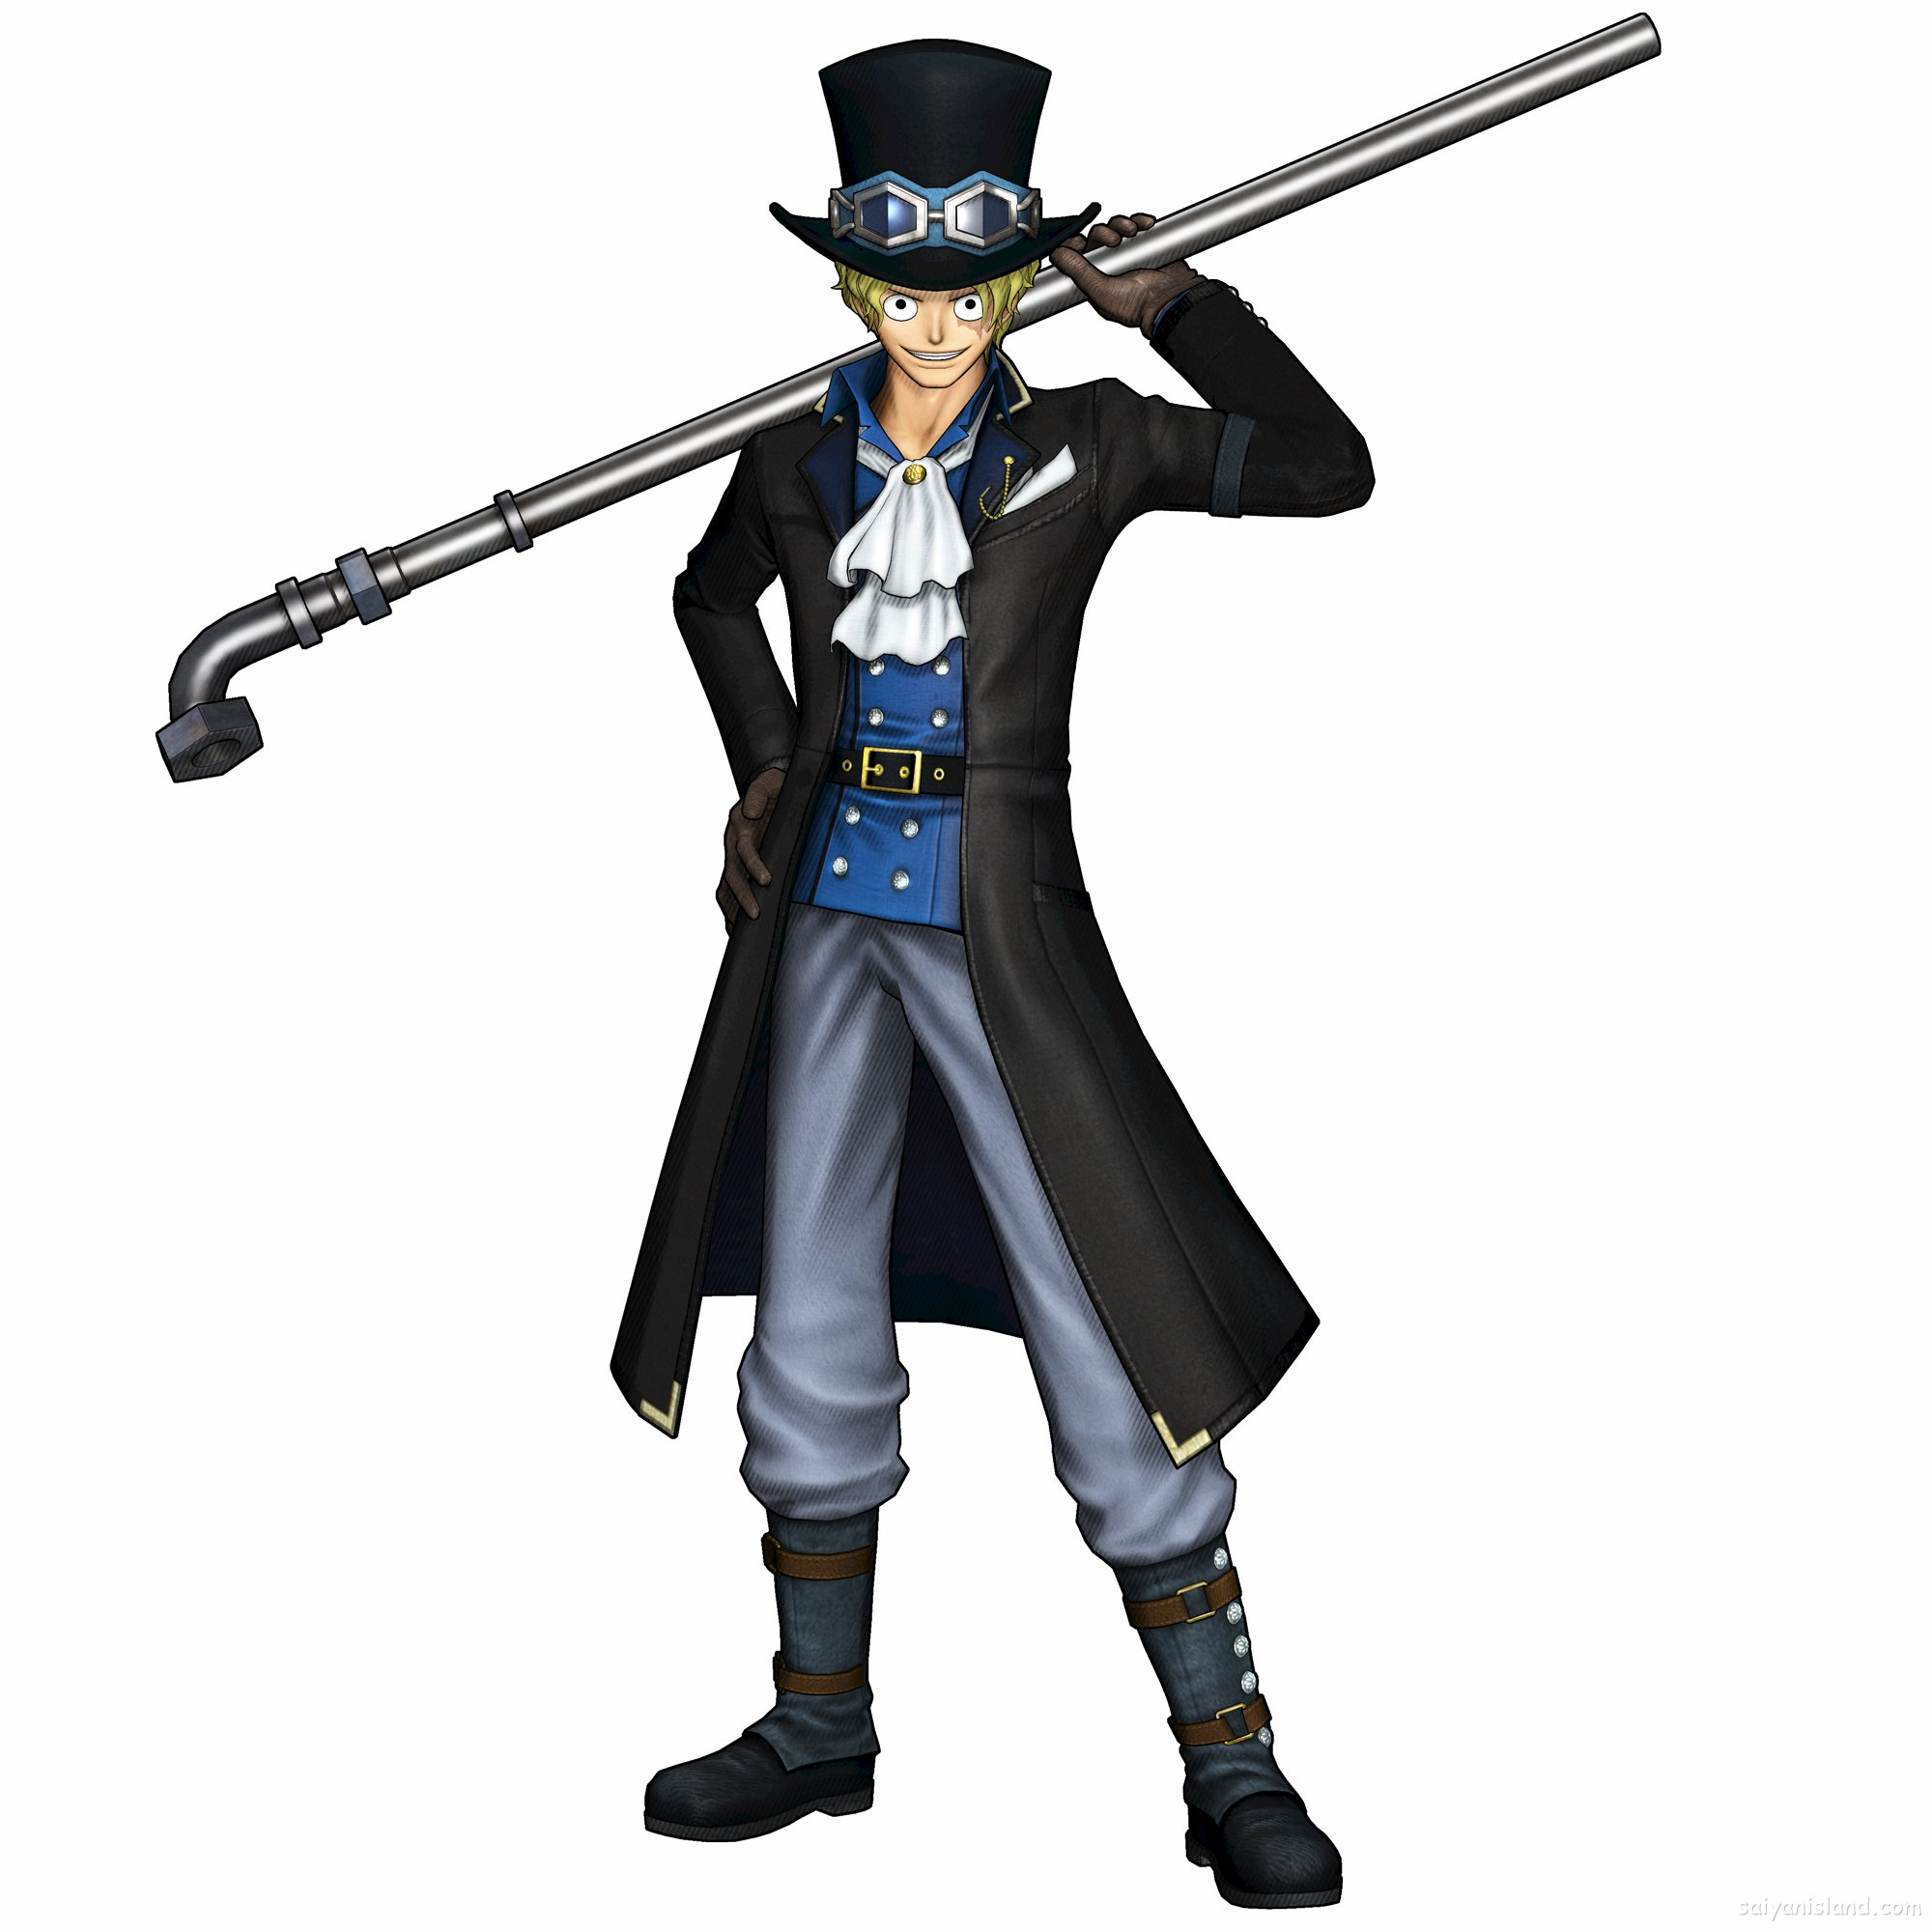 Marco Pirate Warriors 3: Sabo Pirate Warriors 3